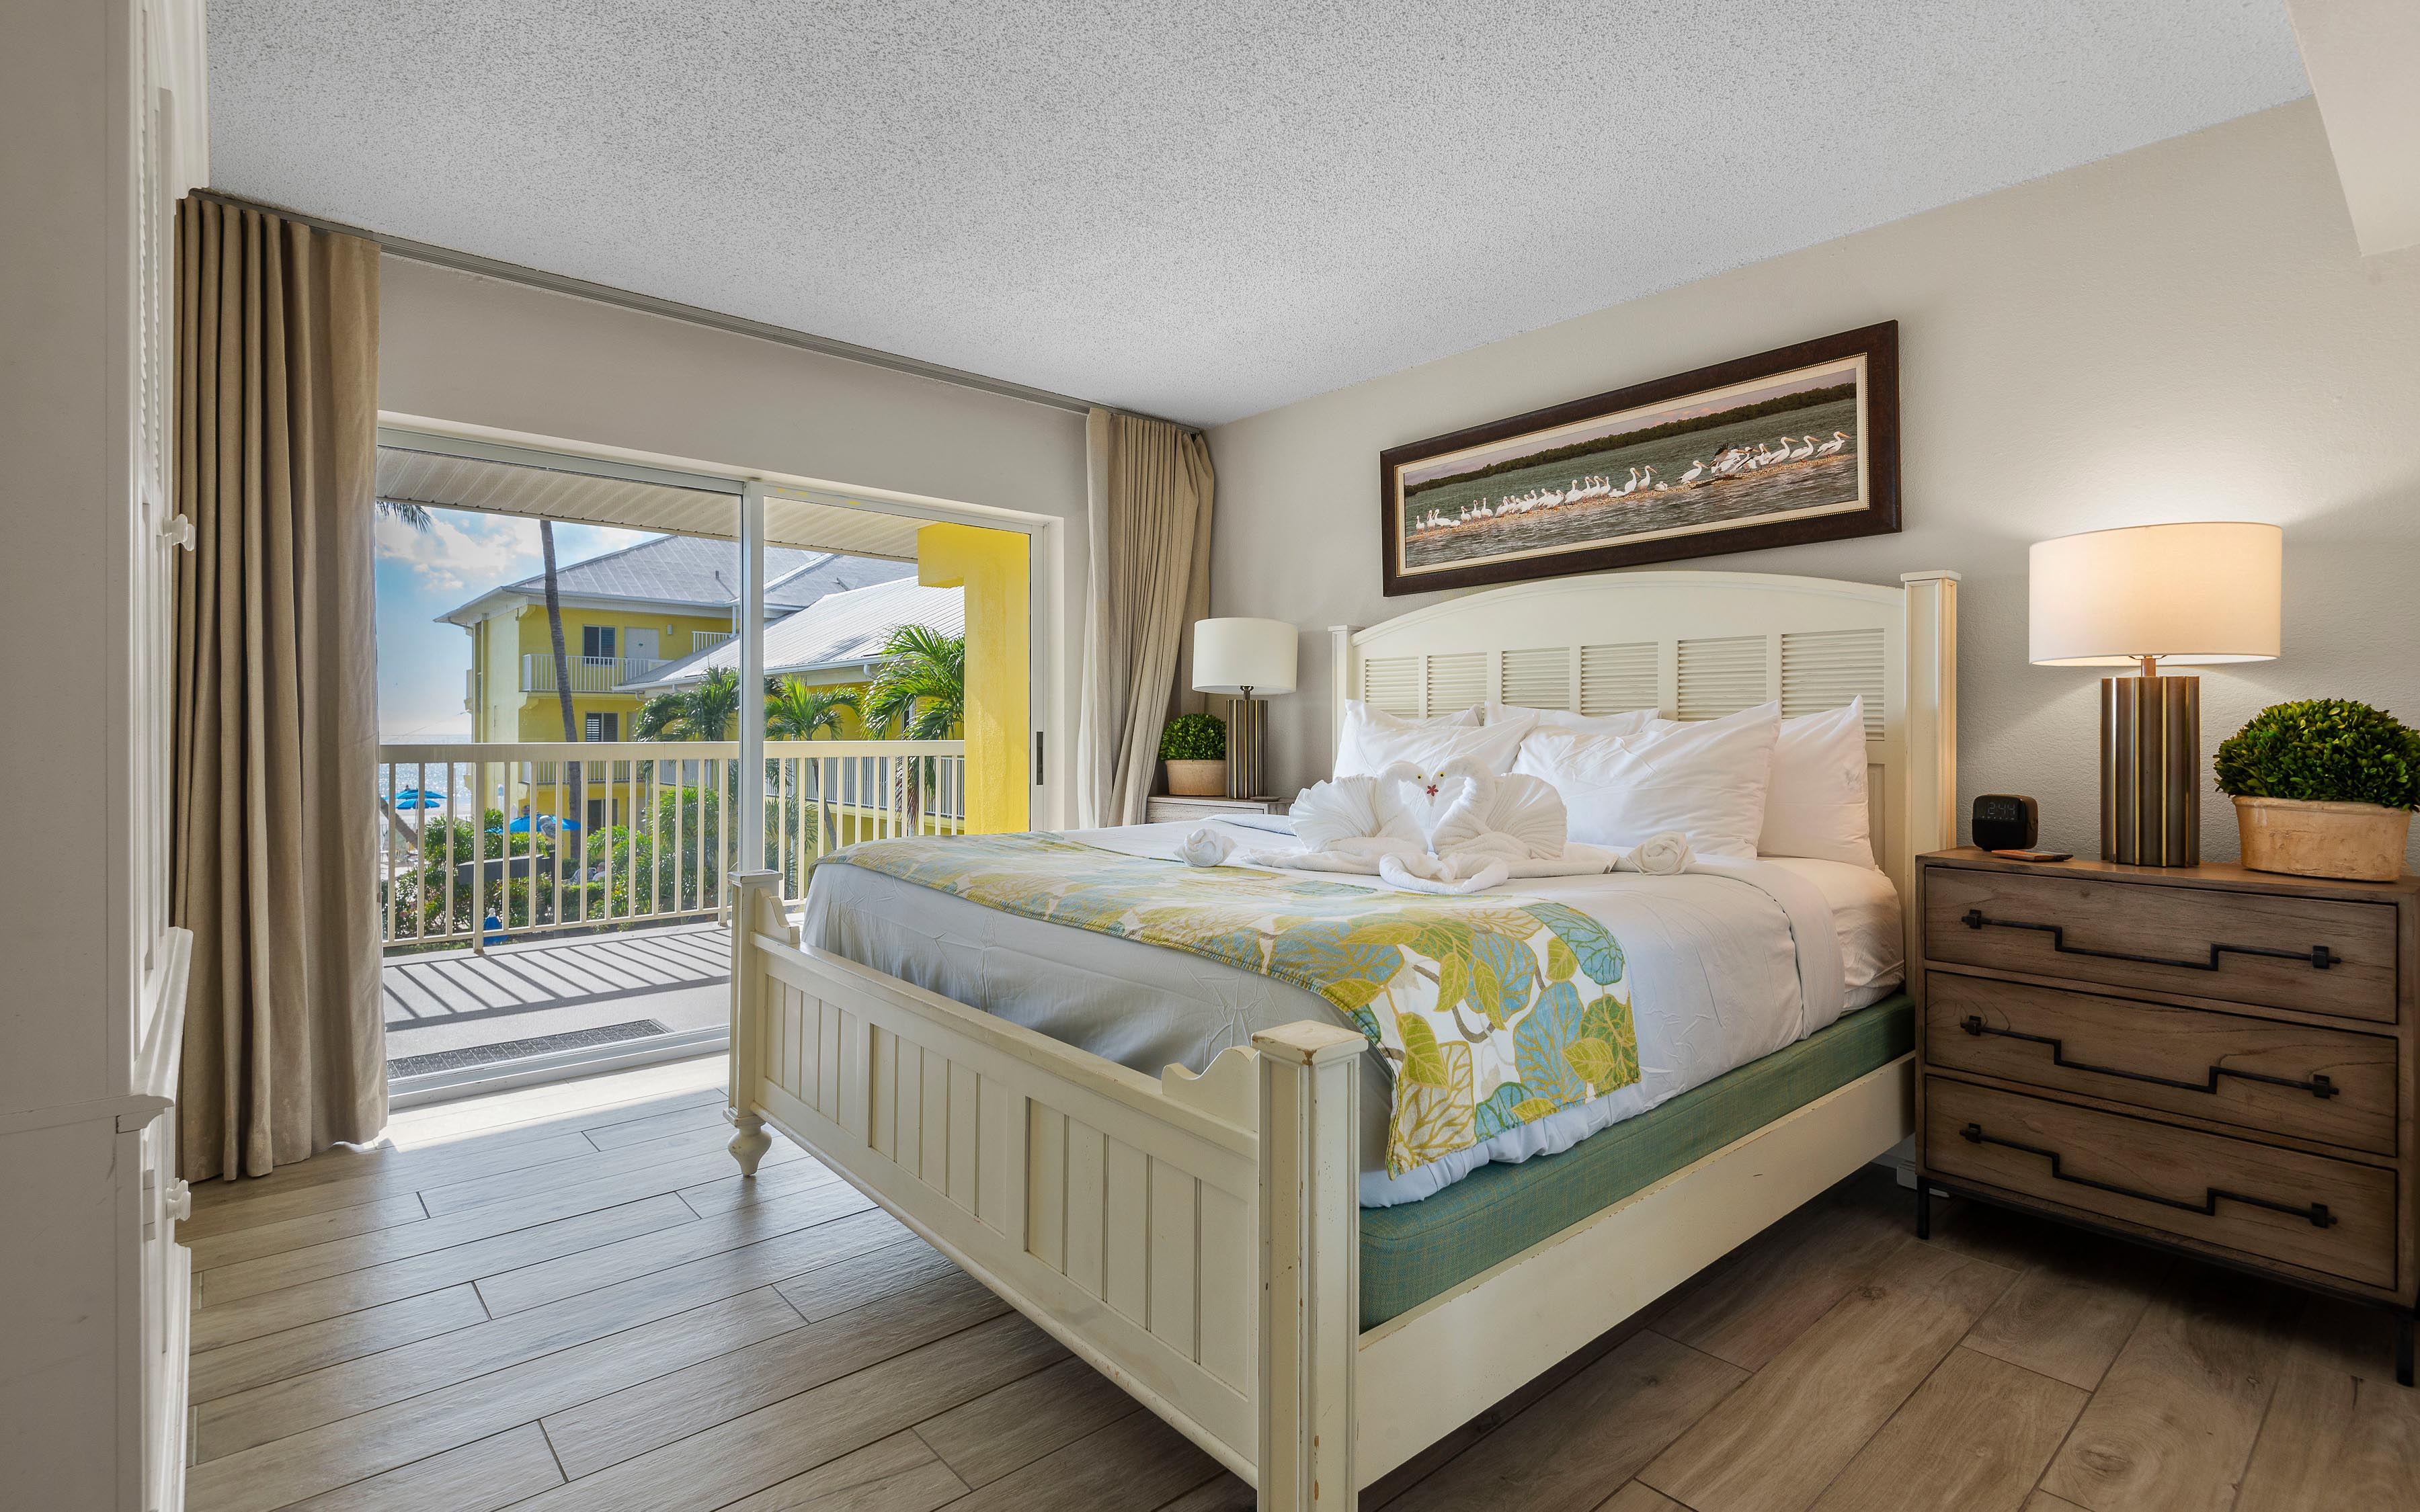 Penthouse Bedroom At Sandpiper Gulf Resort